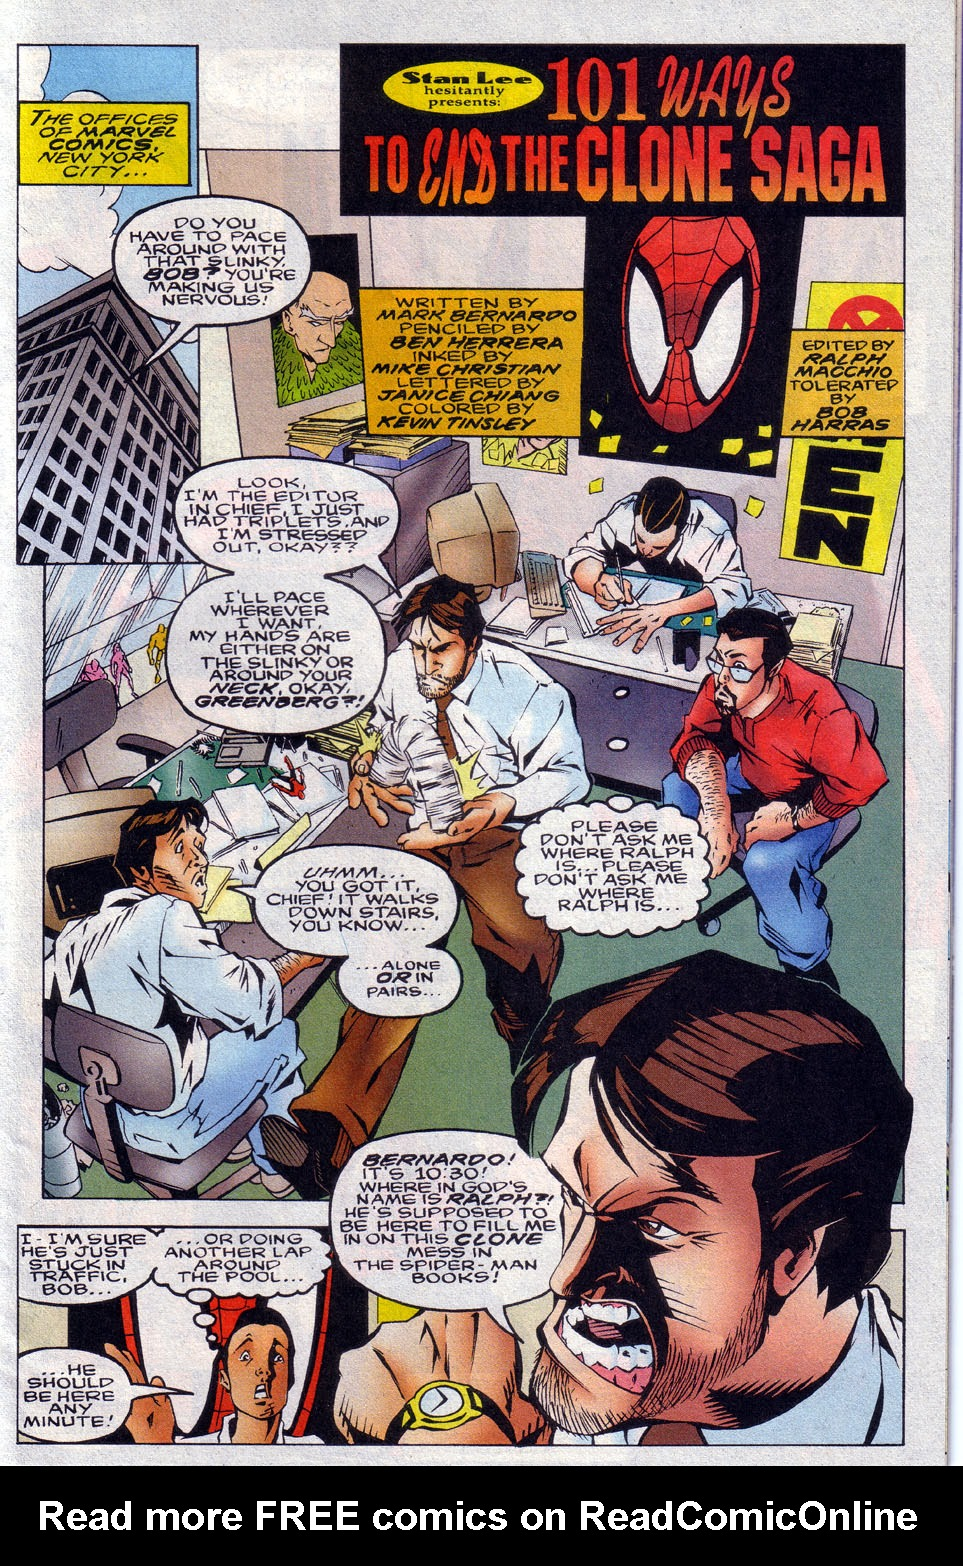 Read online 101 Ways to End the Clone Saga comic -  Issue #101 Ways to End the Clone Saga Full - 3